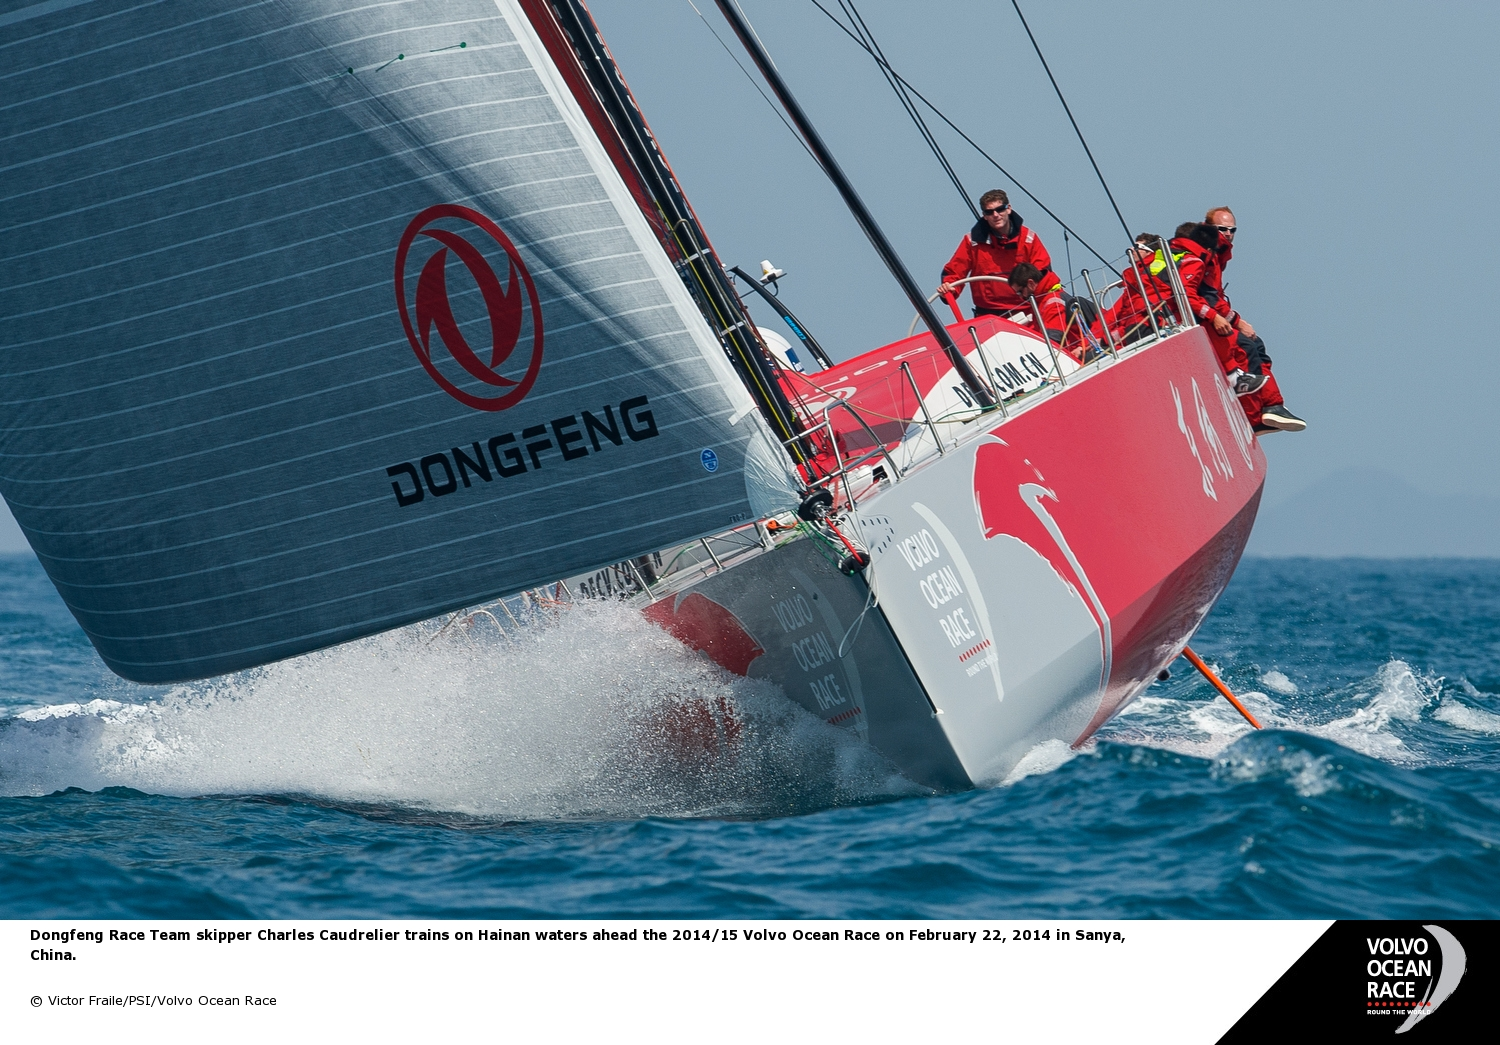 Sailing Team Dongfeng (Photo by Victor Fraile/PSI/Volvo Ocean Race)